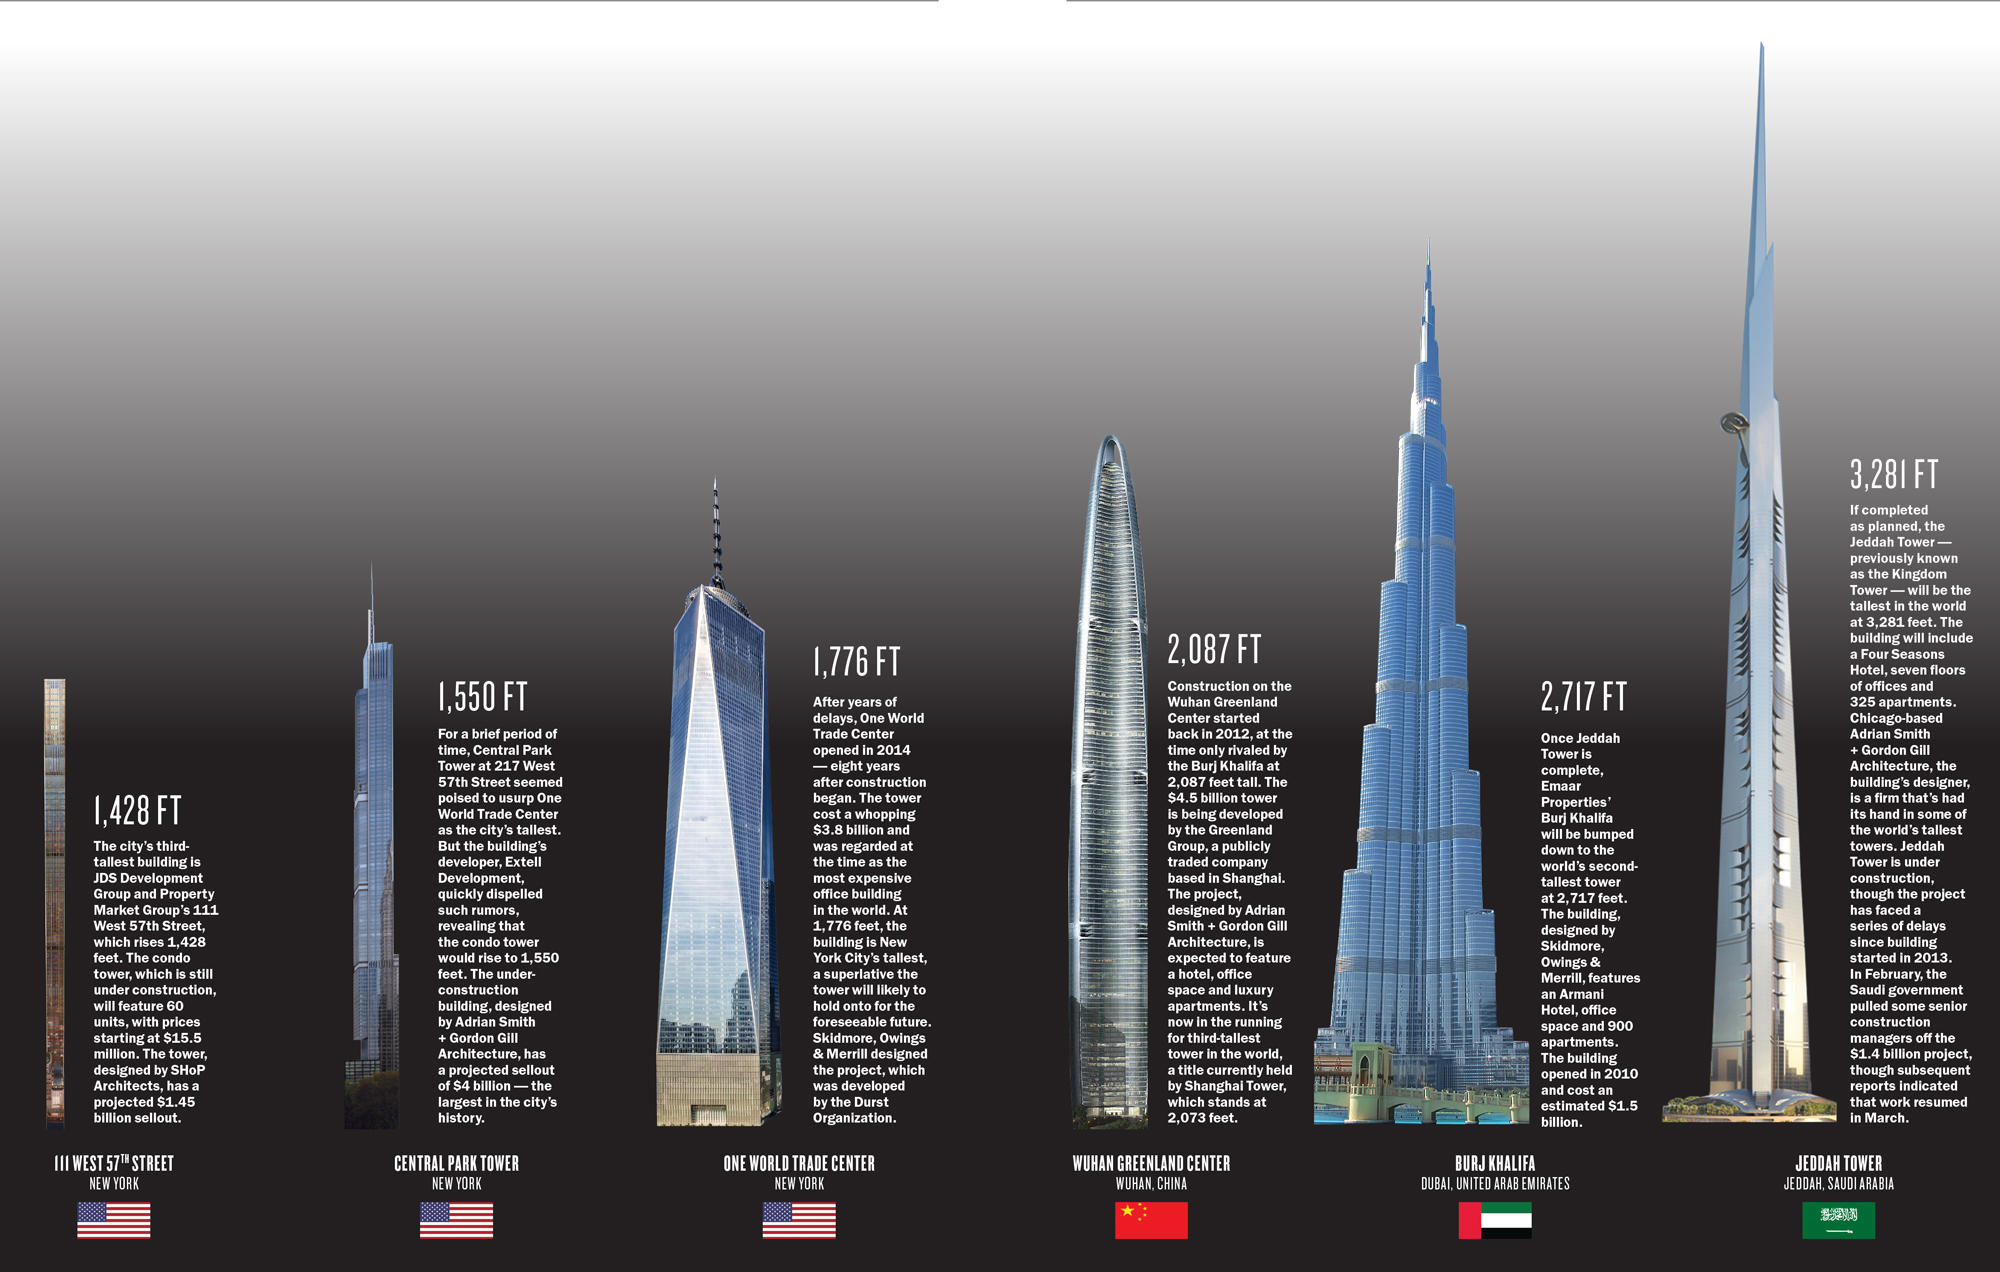 Tallest Residential Building Nyc Tallest Buildings In Nyc Building Tall Towers One Wtc